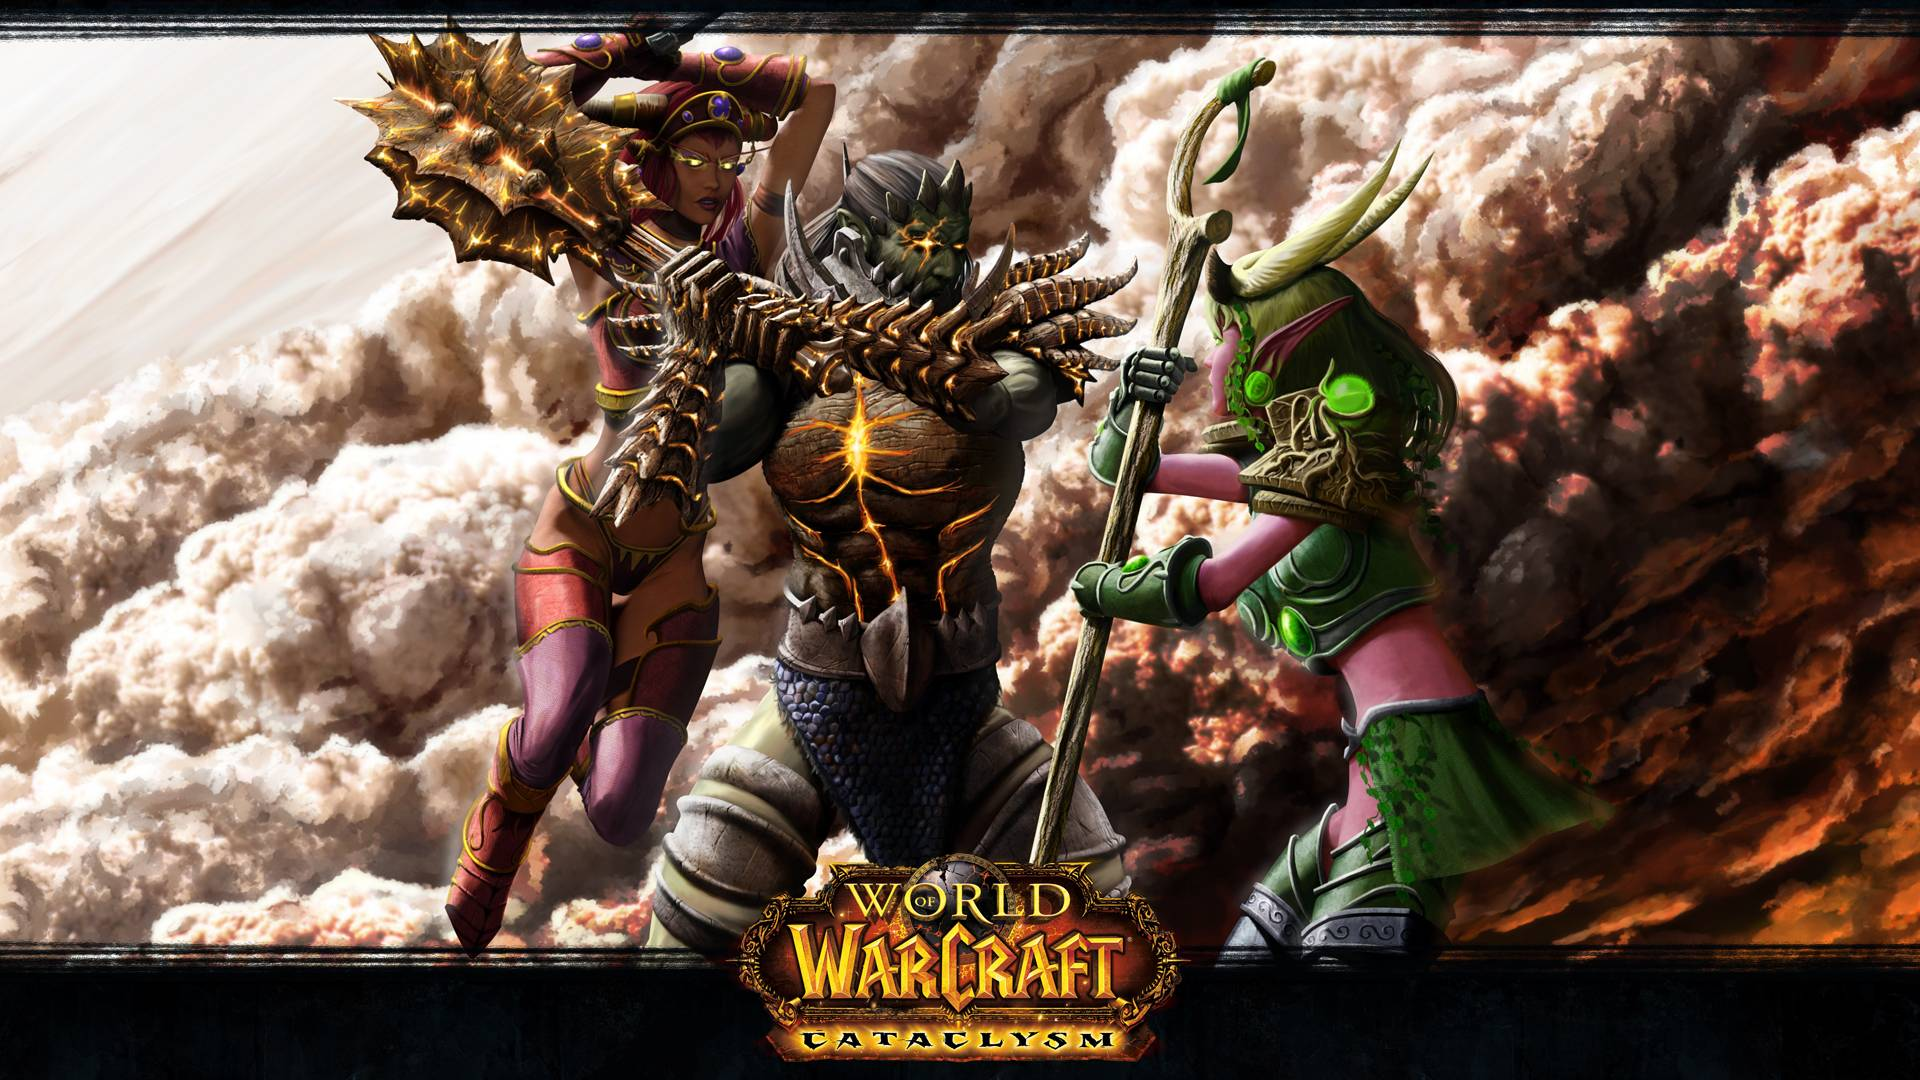 World Of Warcraft Backgrounds 1920x1080: WoW Cataclysm Wallpapers